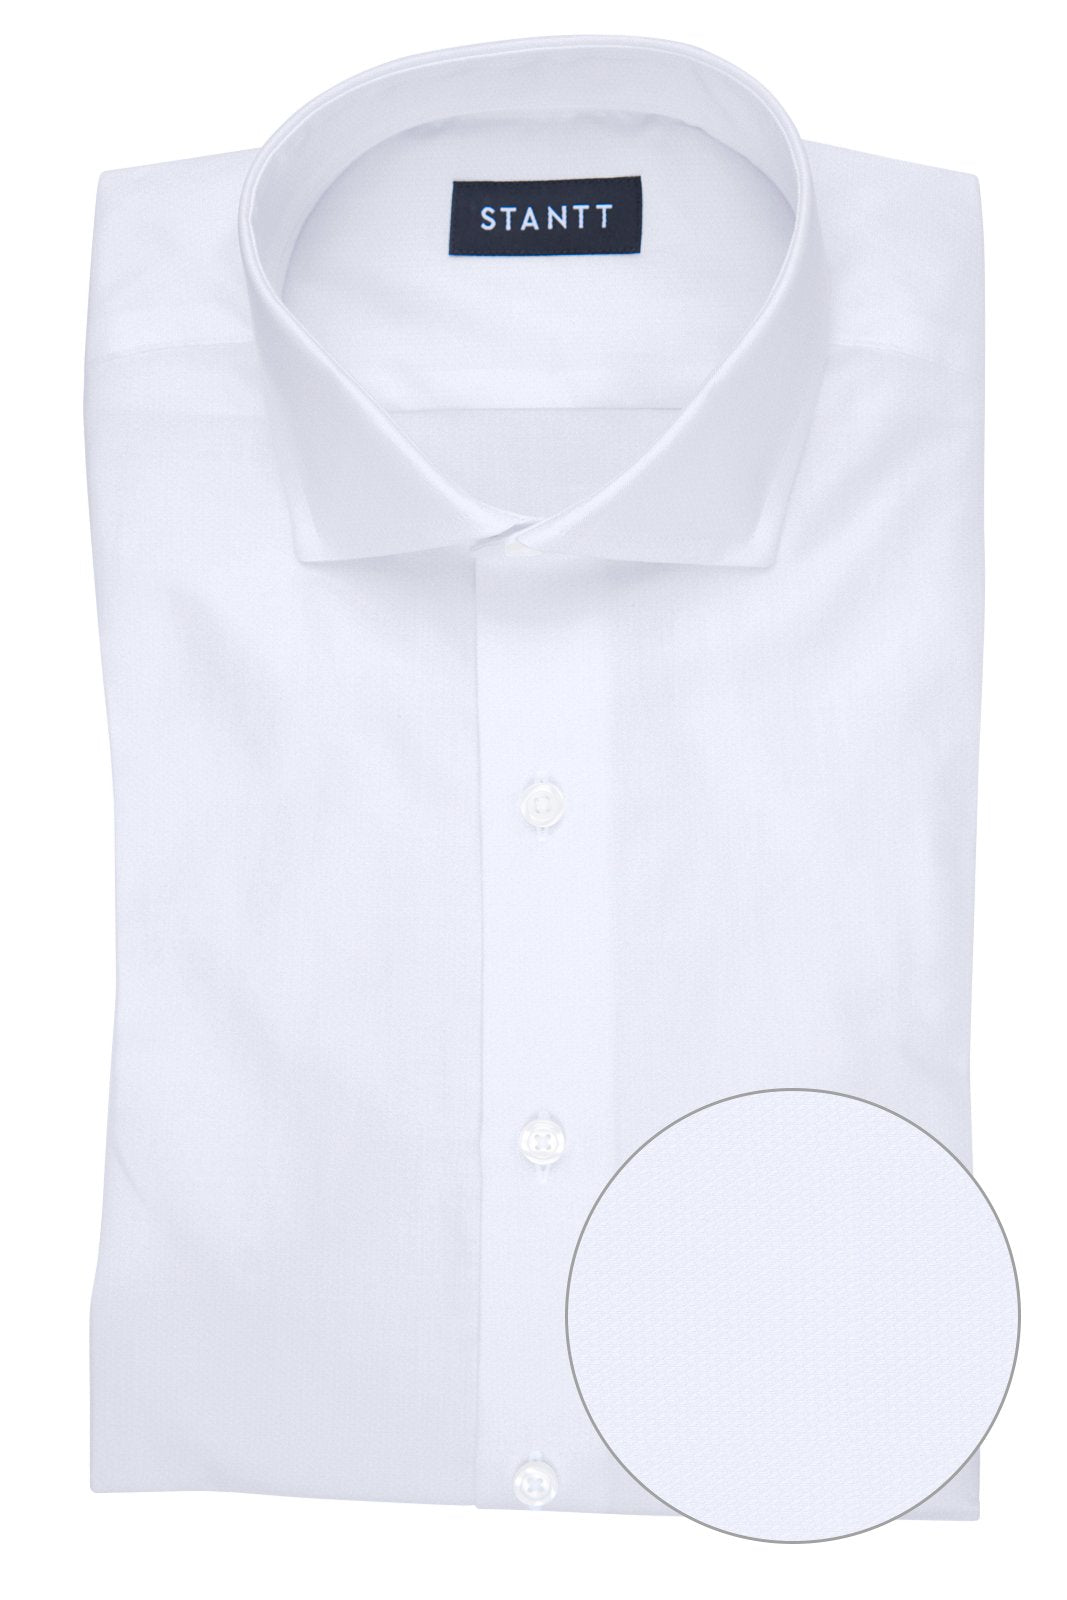 Wrinkle-Resistant White Heart Dobby: Cutaway Collar, French Cuff